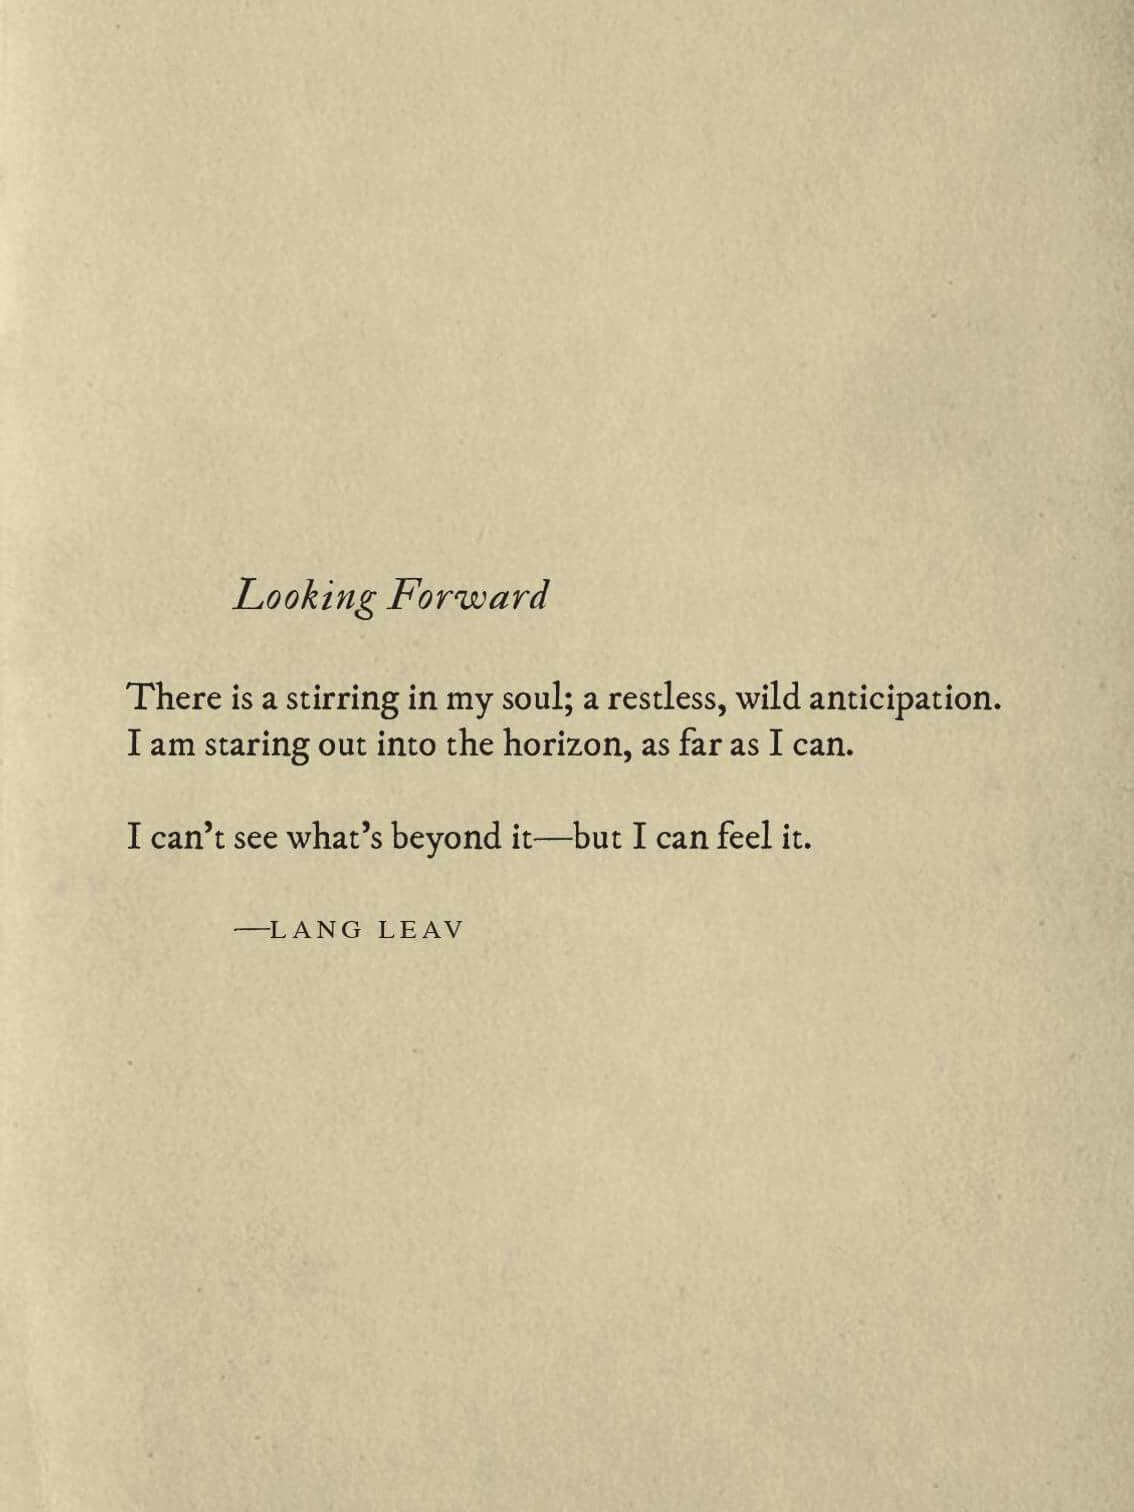 Looking Forward Quotes New Looking Forward #langleav  Beatitudes Of Life  Pinterest  Wisdom